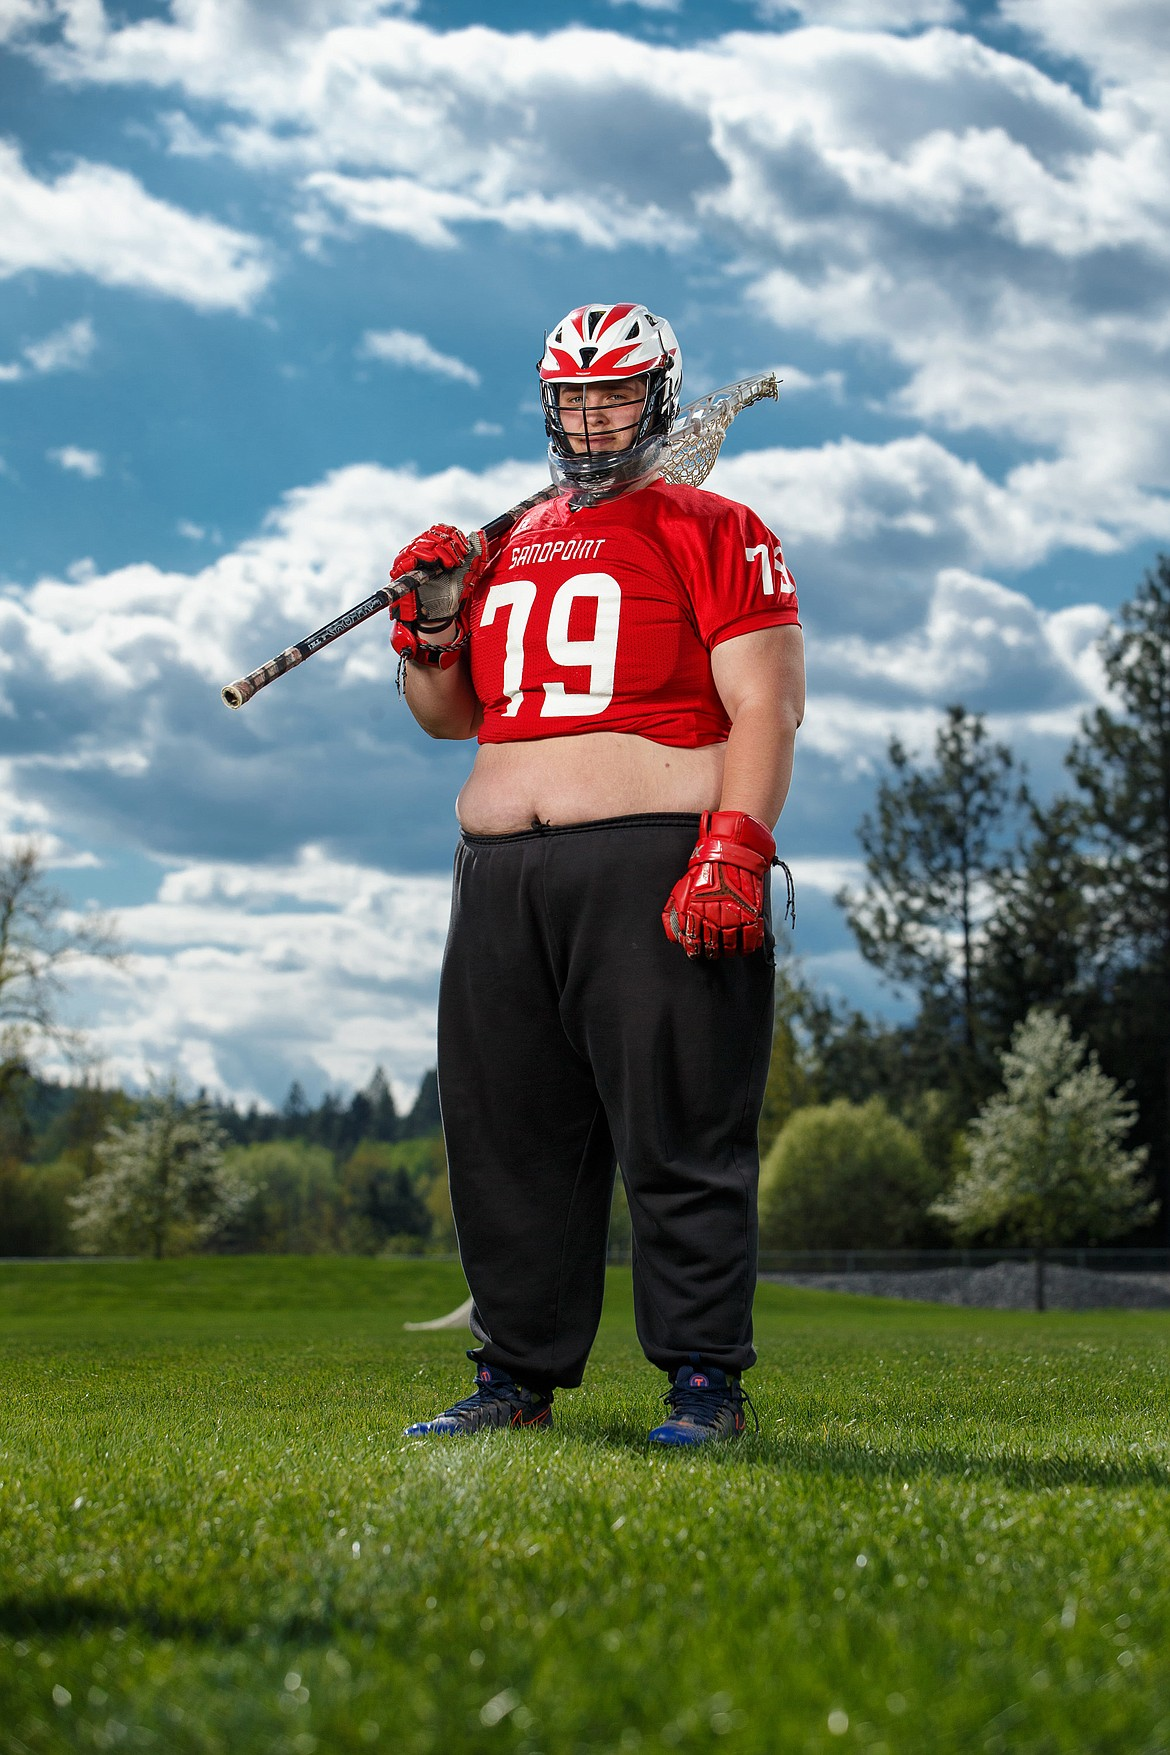 """Greg Steiner joined the Sandpoint lacrosse team as a sophomore and became the team's starting goalie last year. Head coach Ken Hutchings said Steiner was fearless in net. """"I never saw him flinch,"""" he said."""